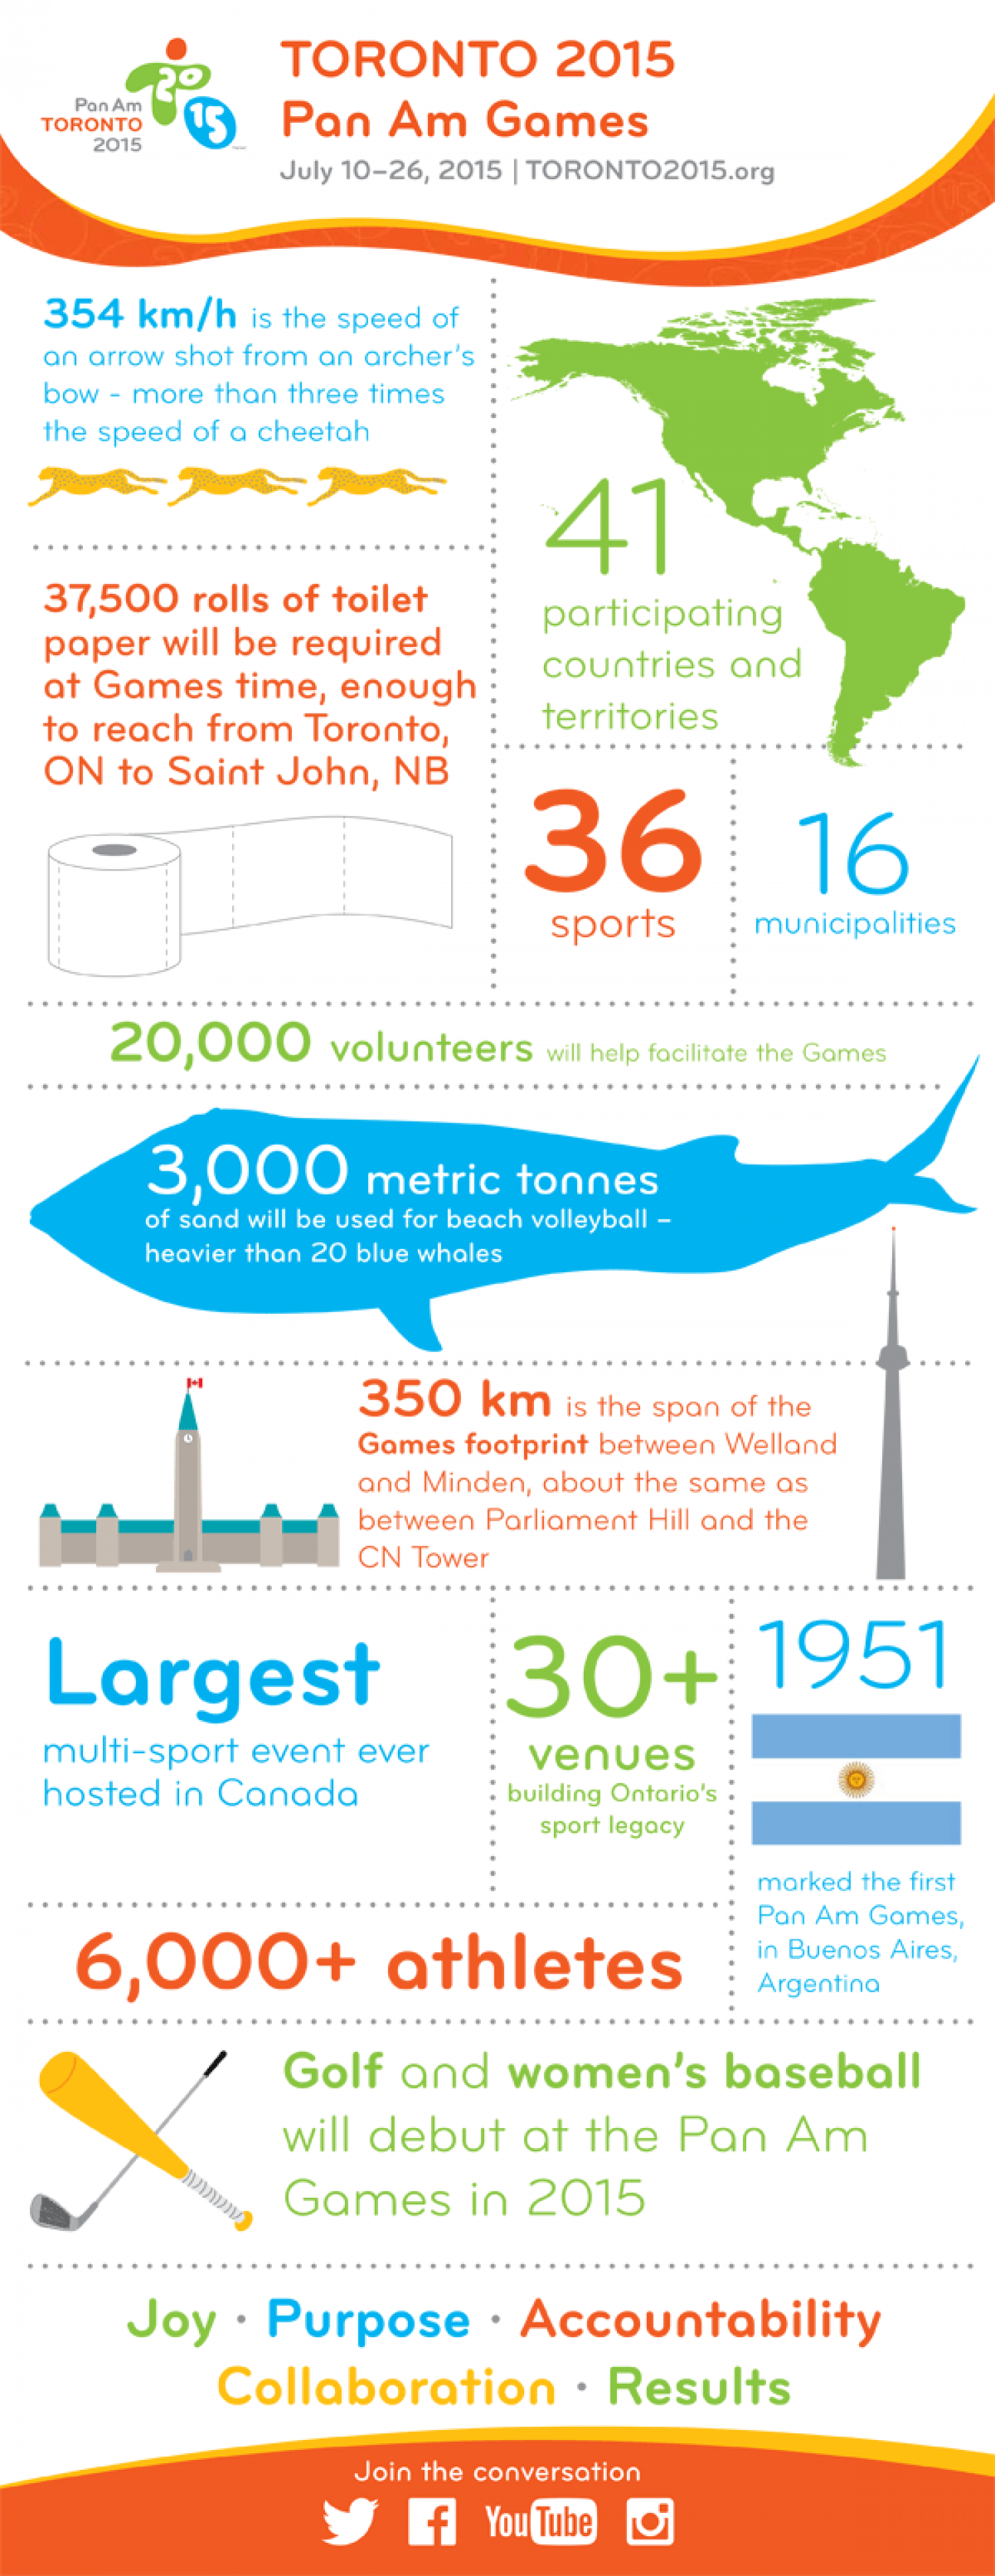 TORONTO 2015 Pan Am Games Infographic Infographic